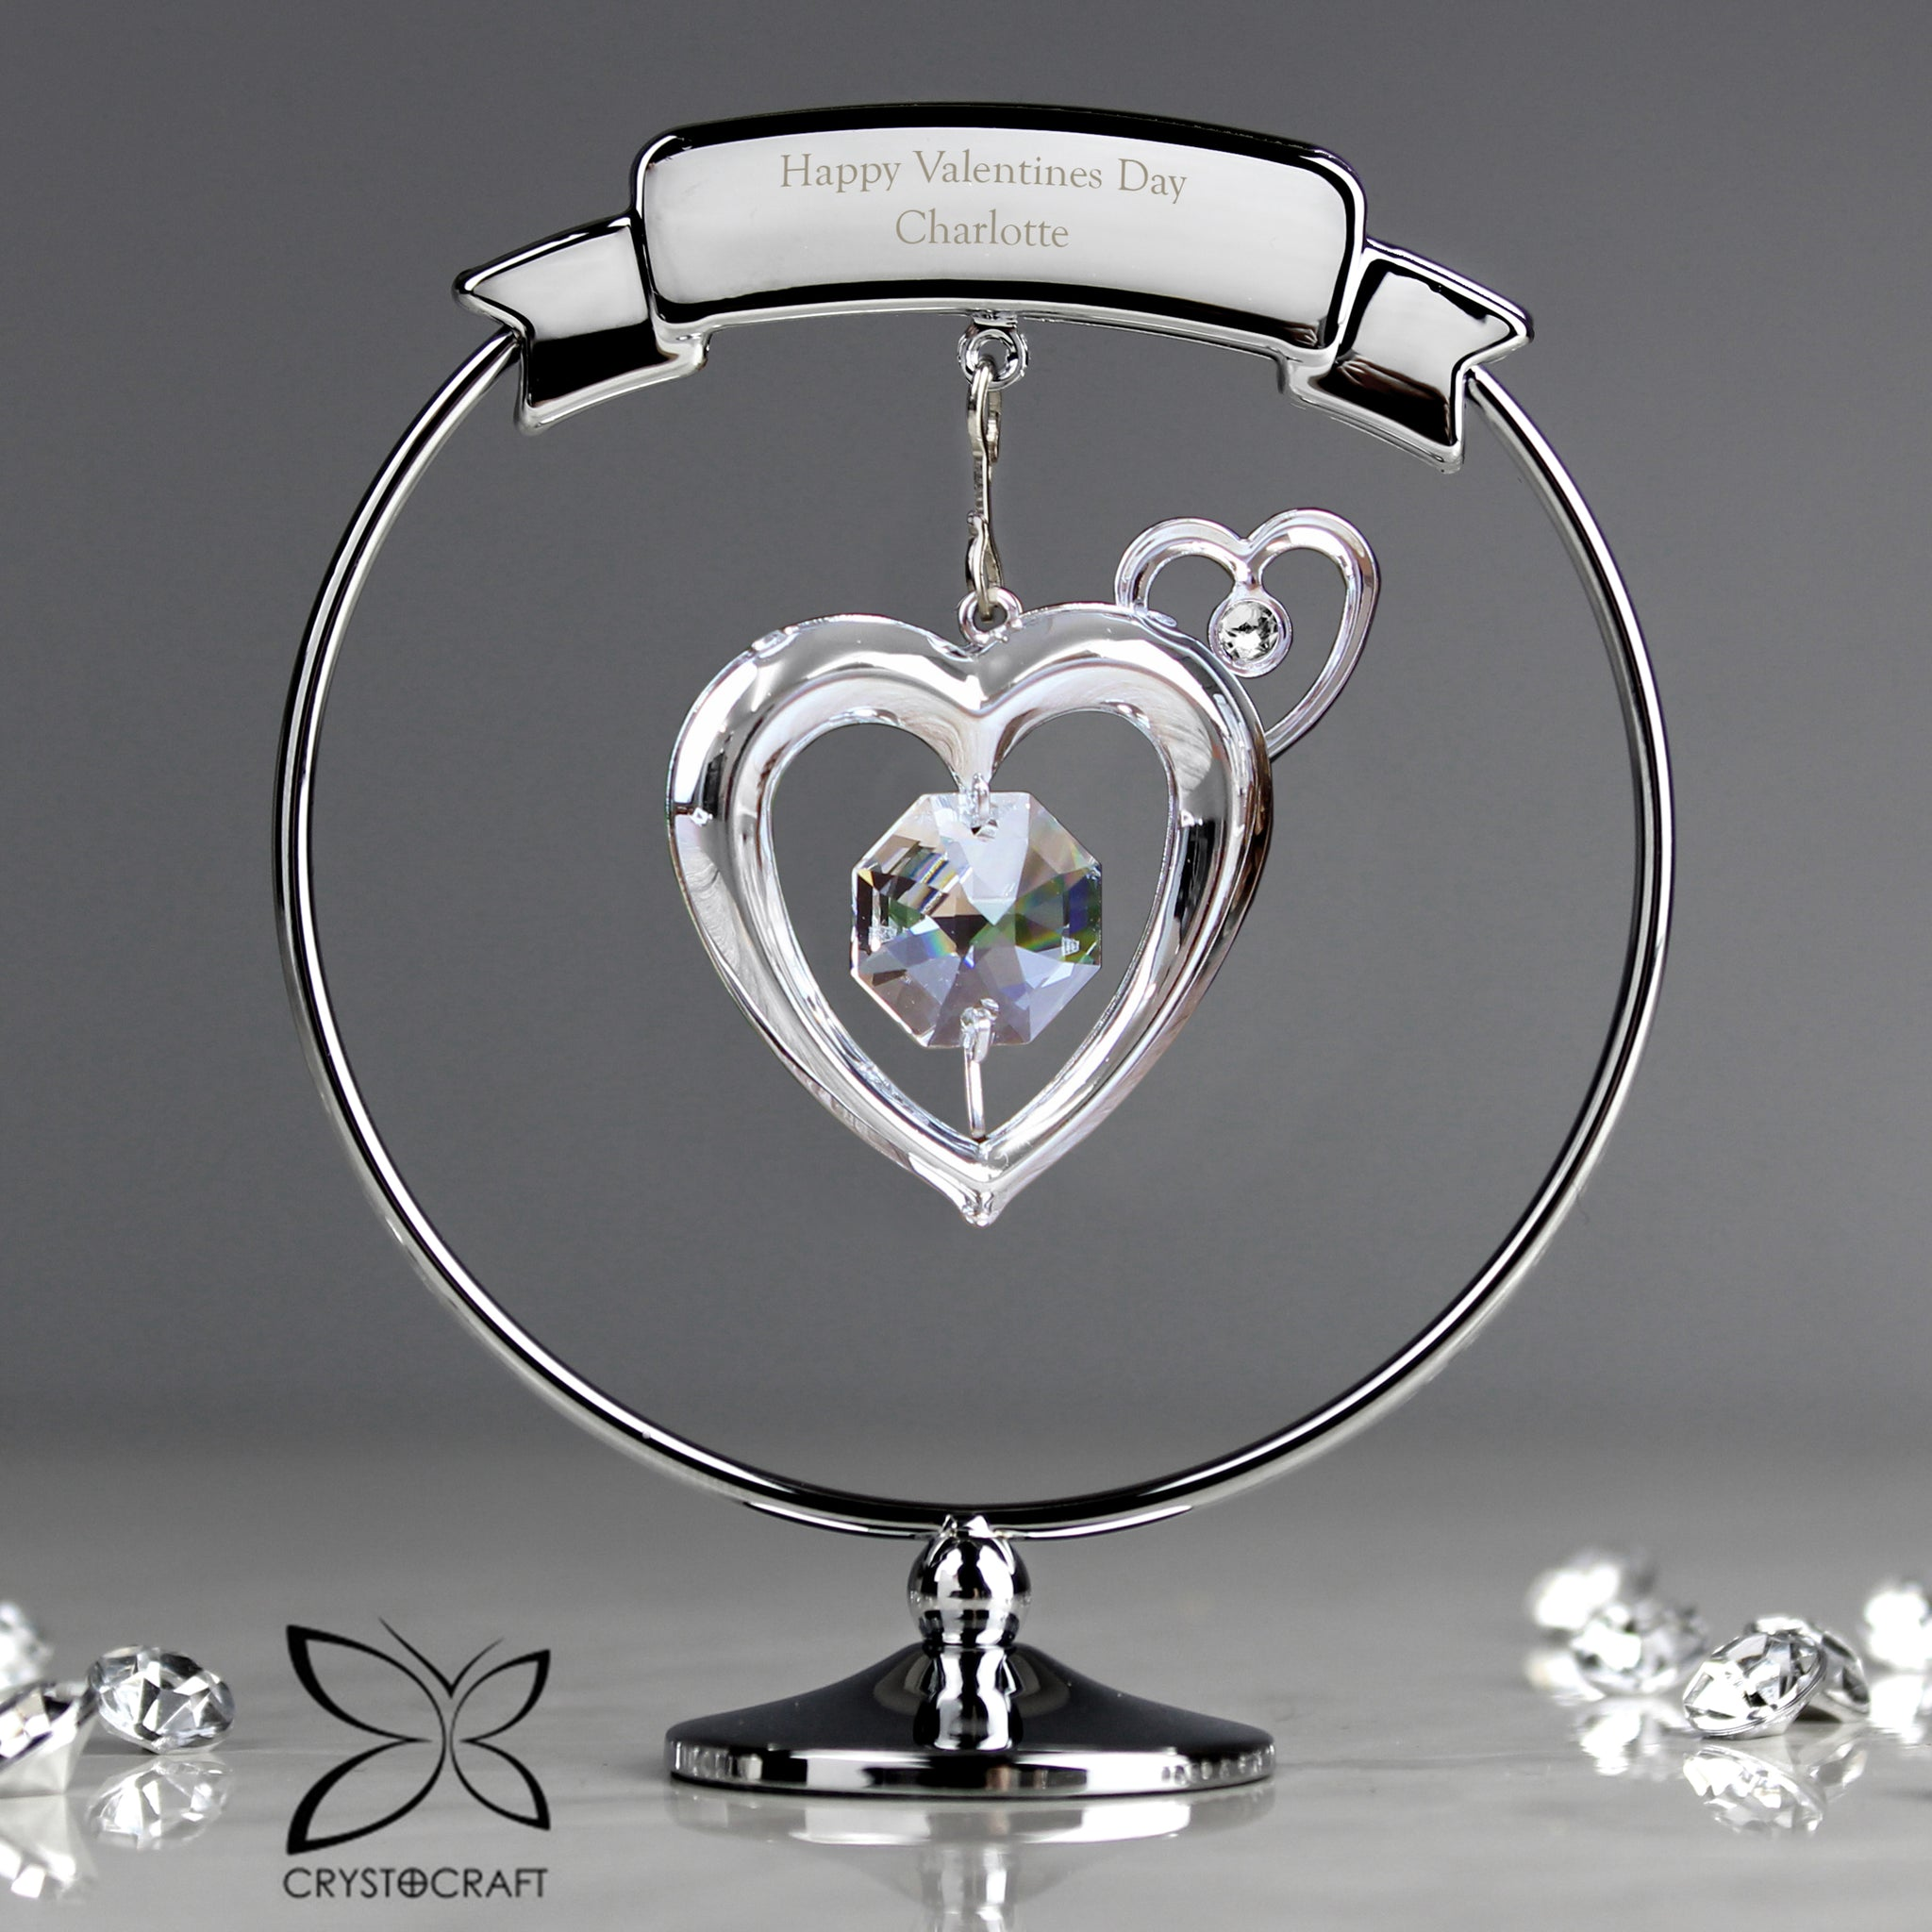 Buy Personalised Crystocraft Heart Ornament £14.99 at Gift Moments